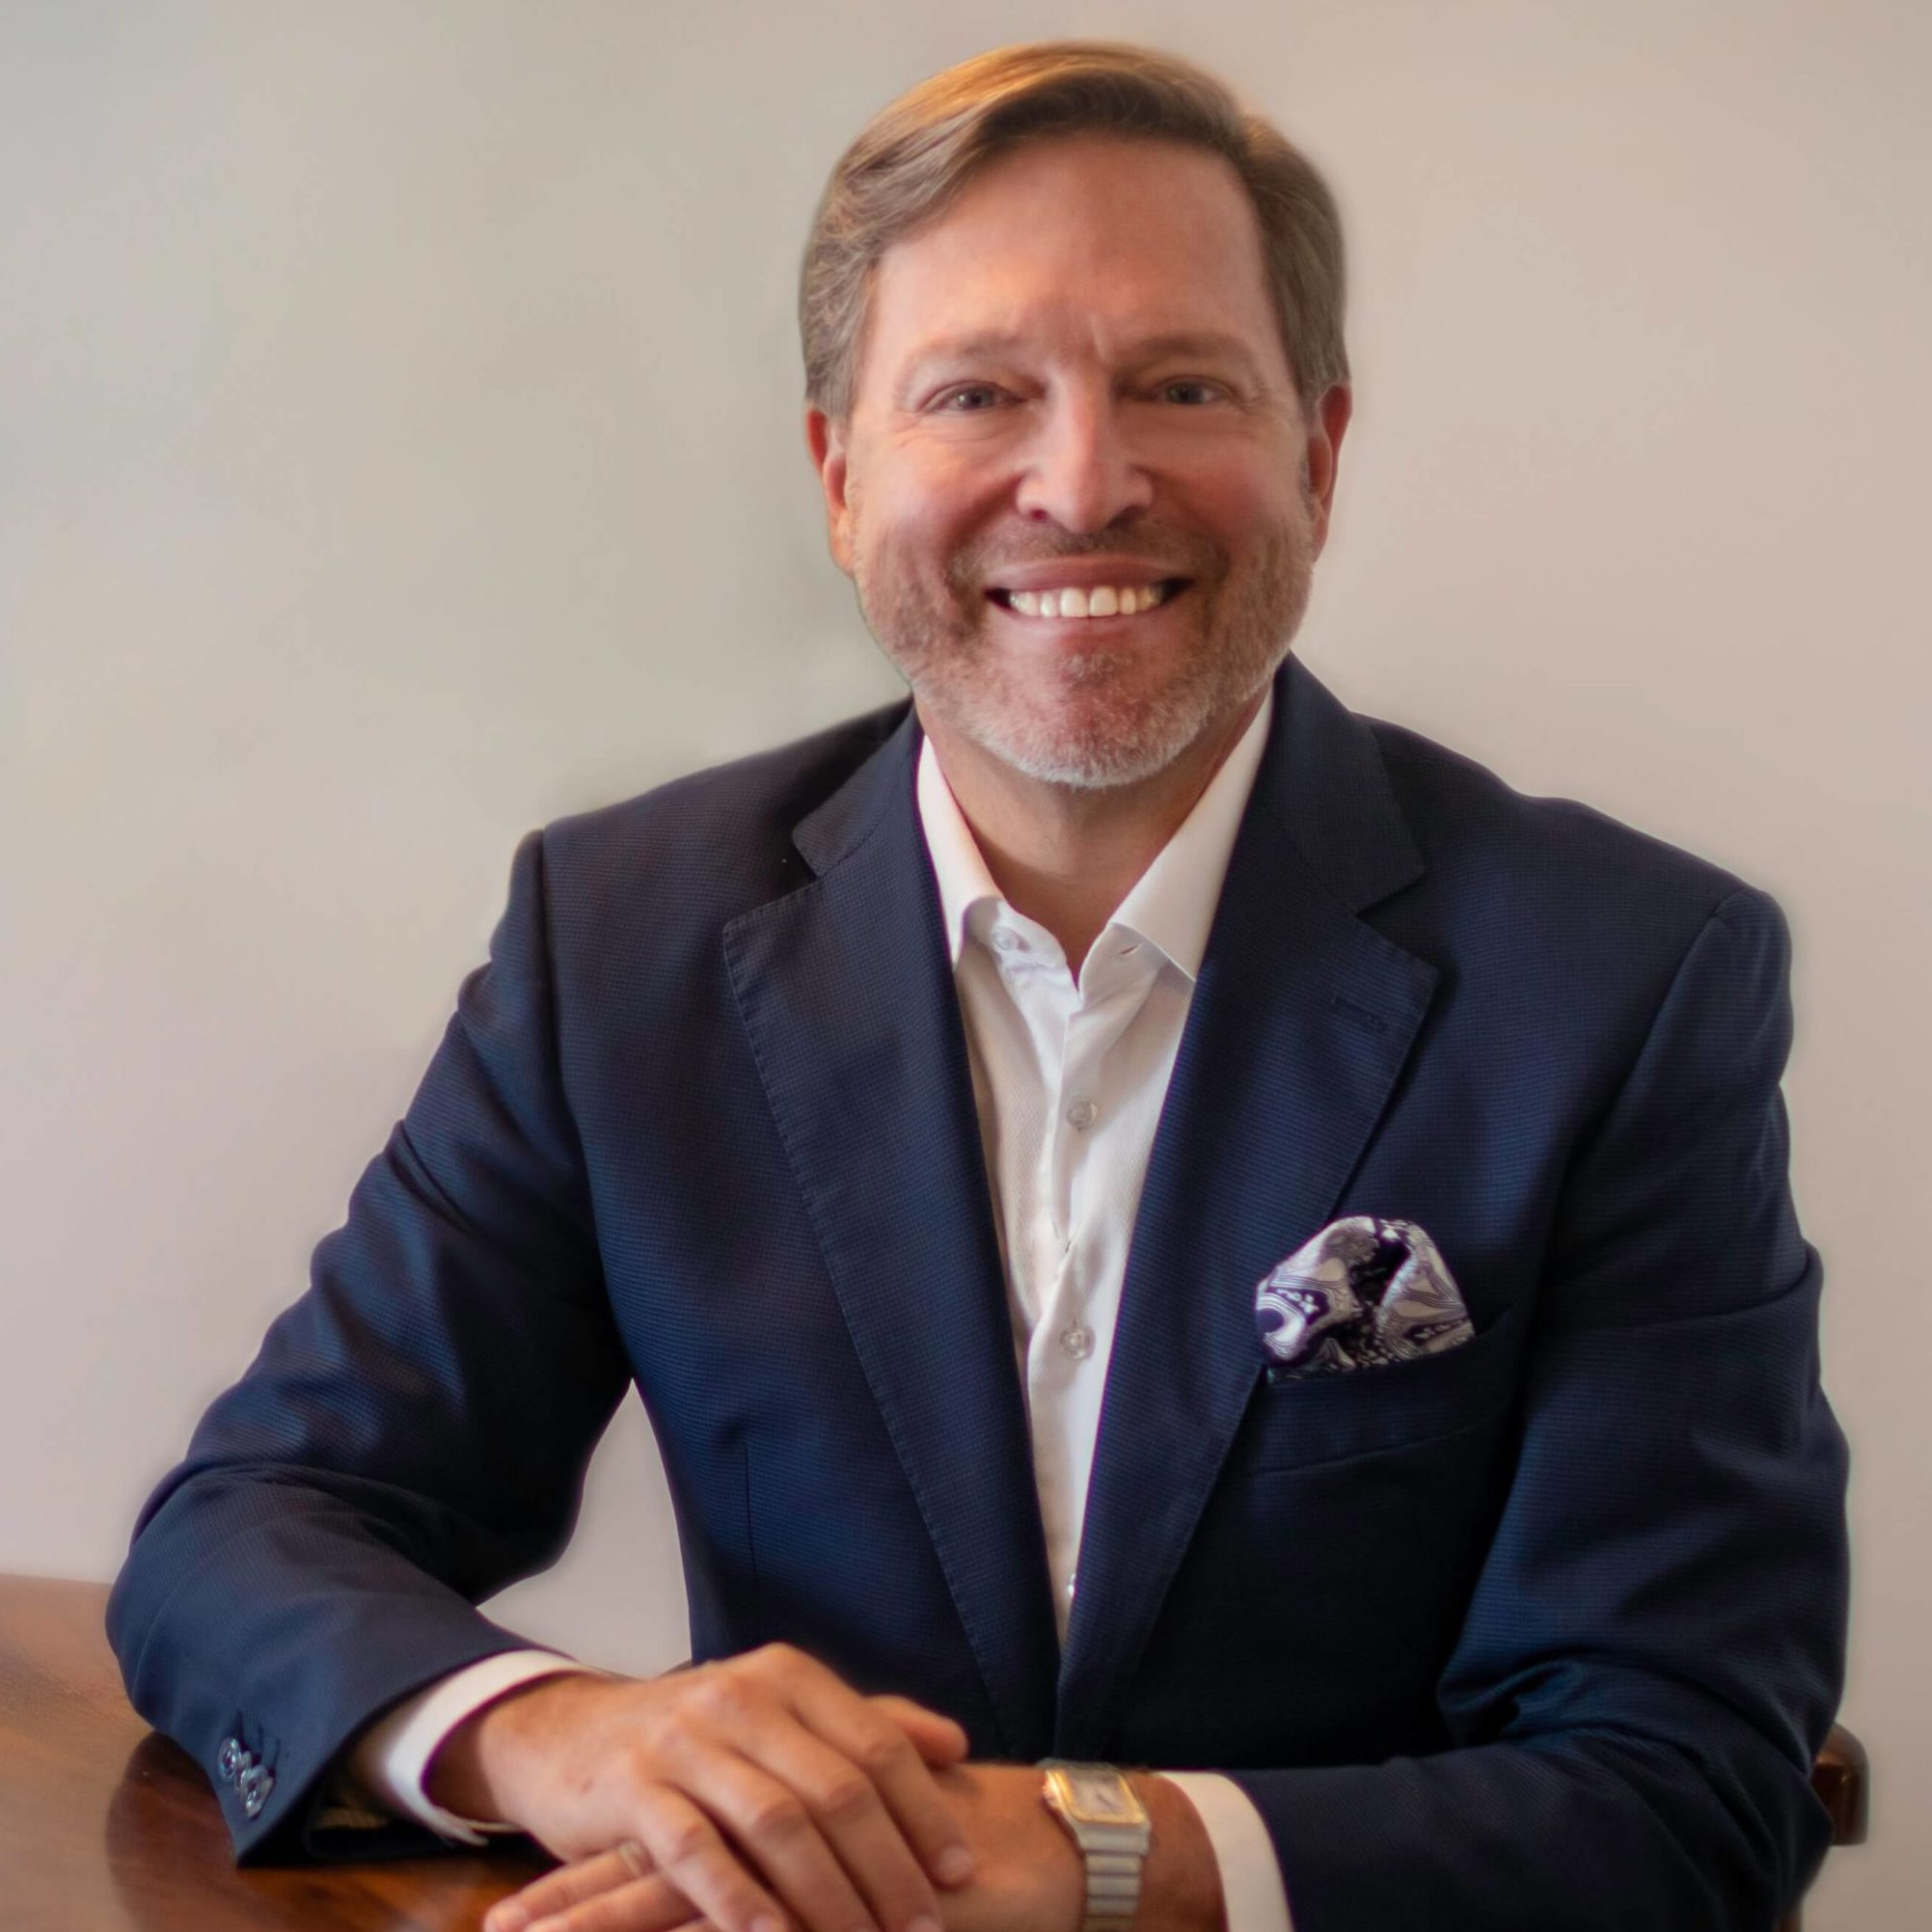 Verne Harnish, CEO Scaling Up